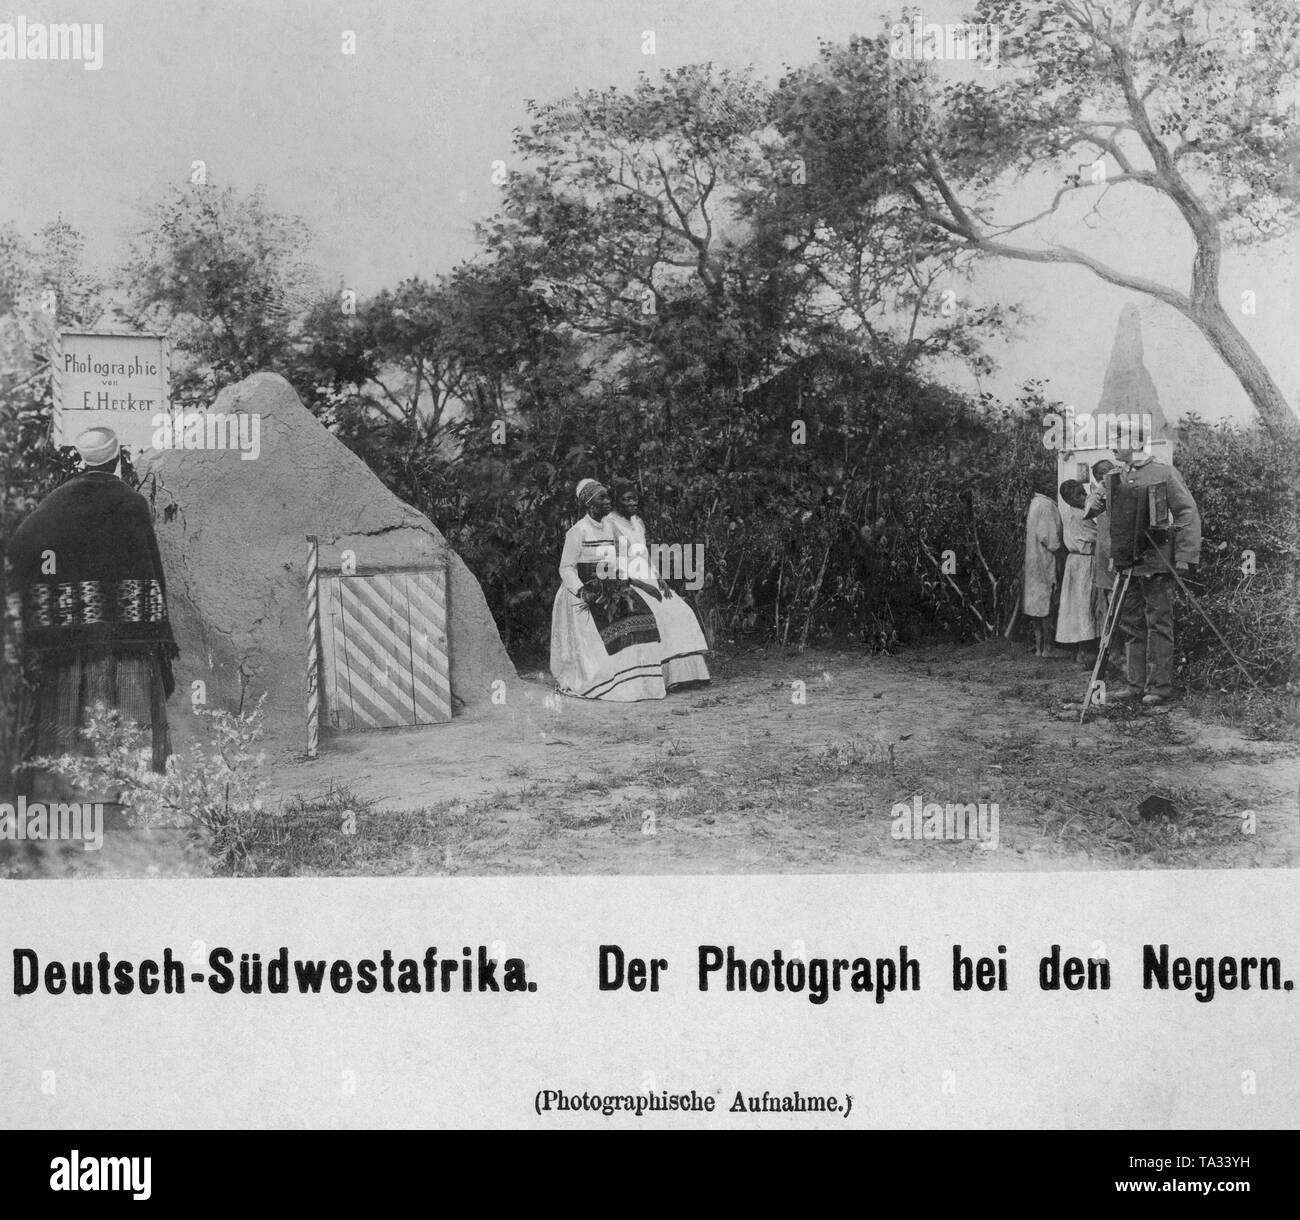 The photographer E. Hecker photographs local women in European clothing in German Southwest Africa. Stock Photo